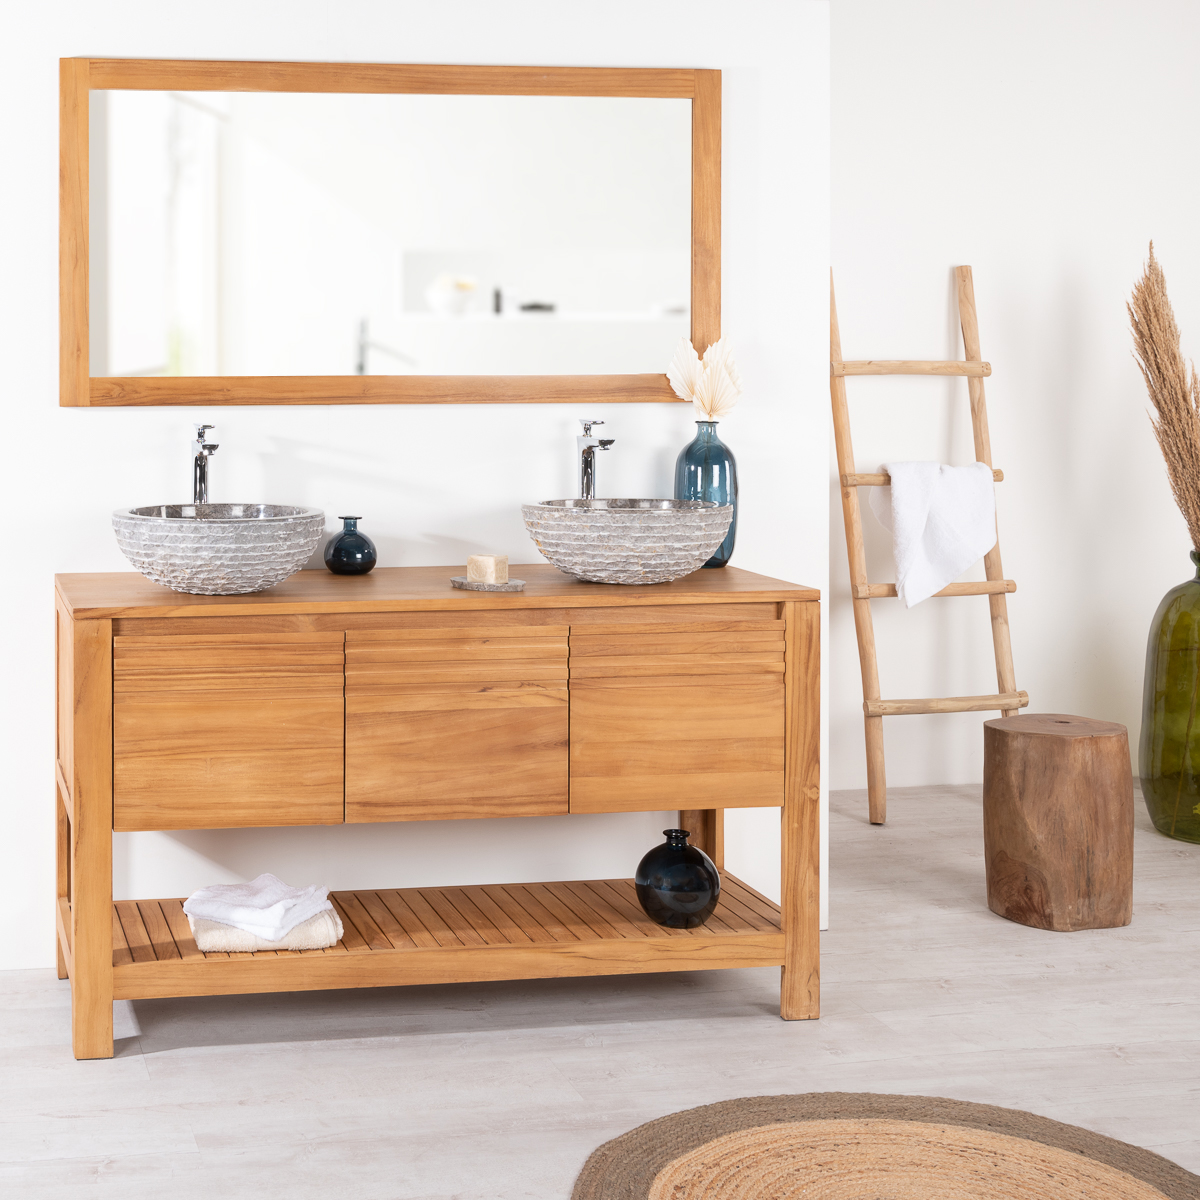 Meuble Sous Vasque Simple Vasque En Bois Teck Massif Meg Ve Naturel L 140 Cm